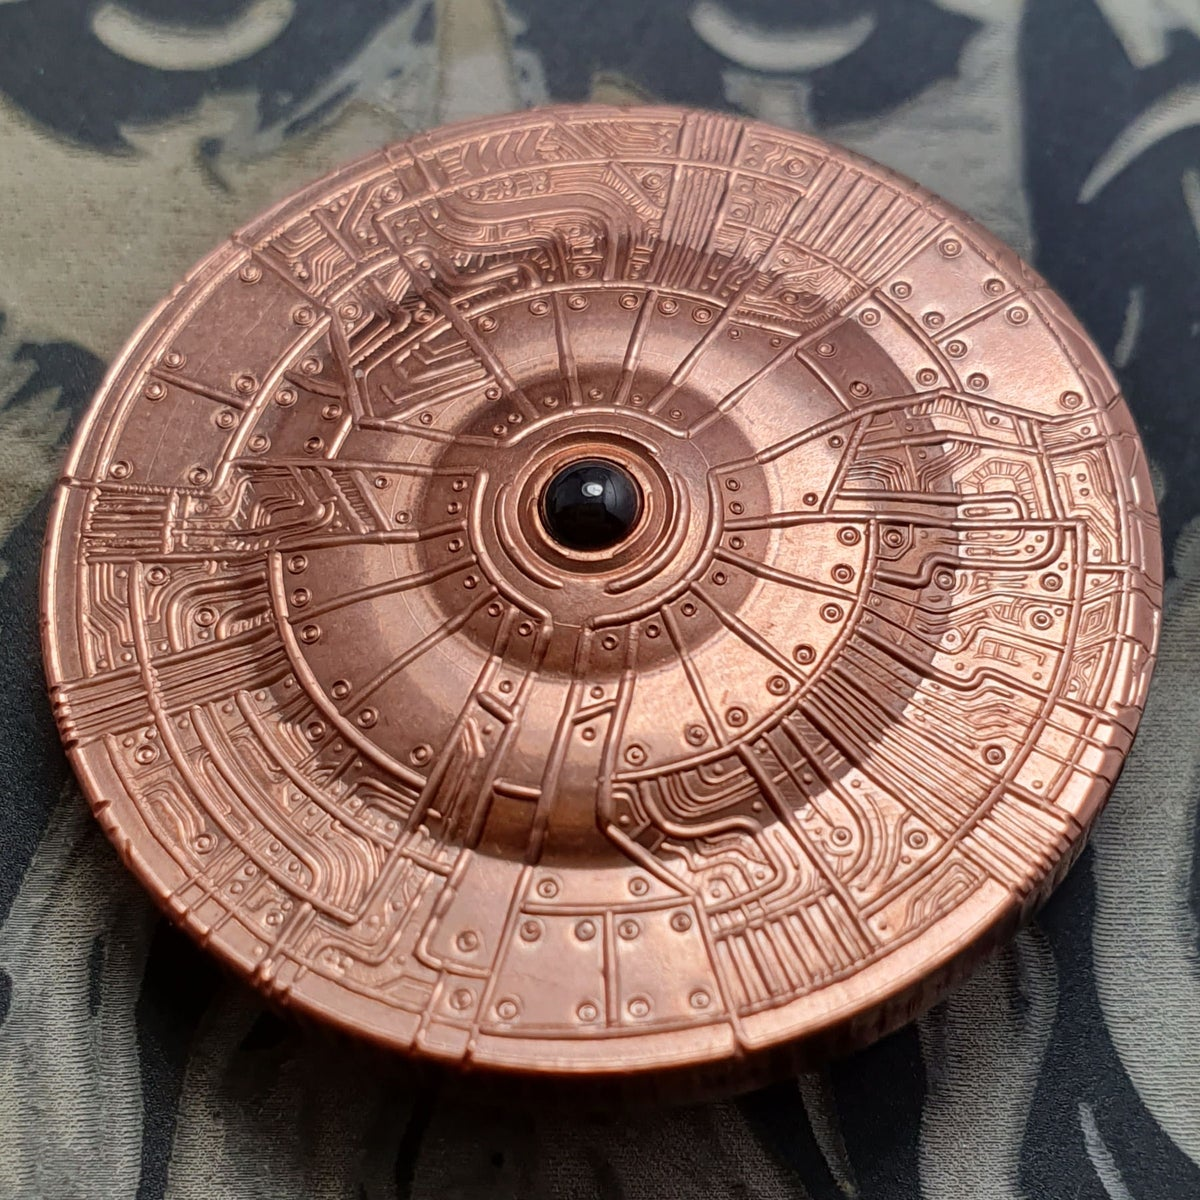 Copper SpaceSchipp3 with Reeded Edge